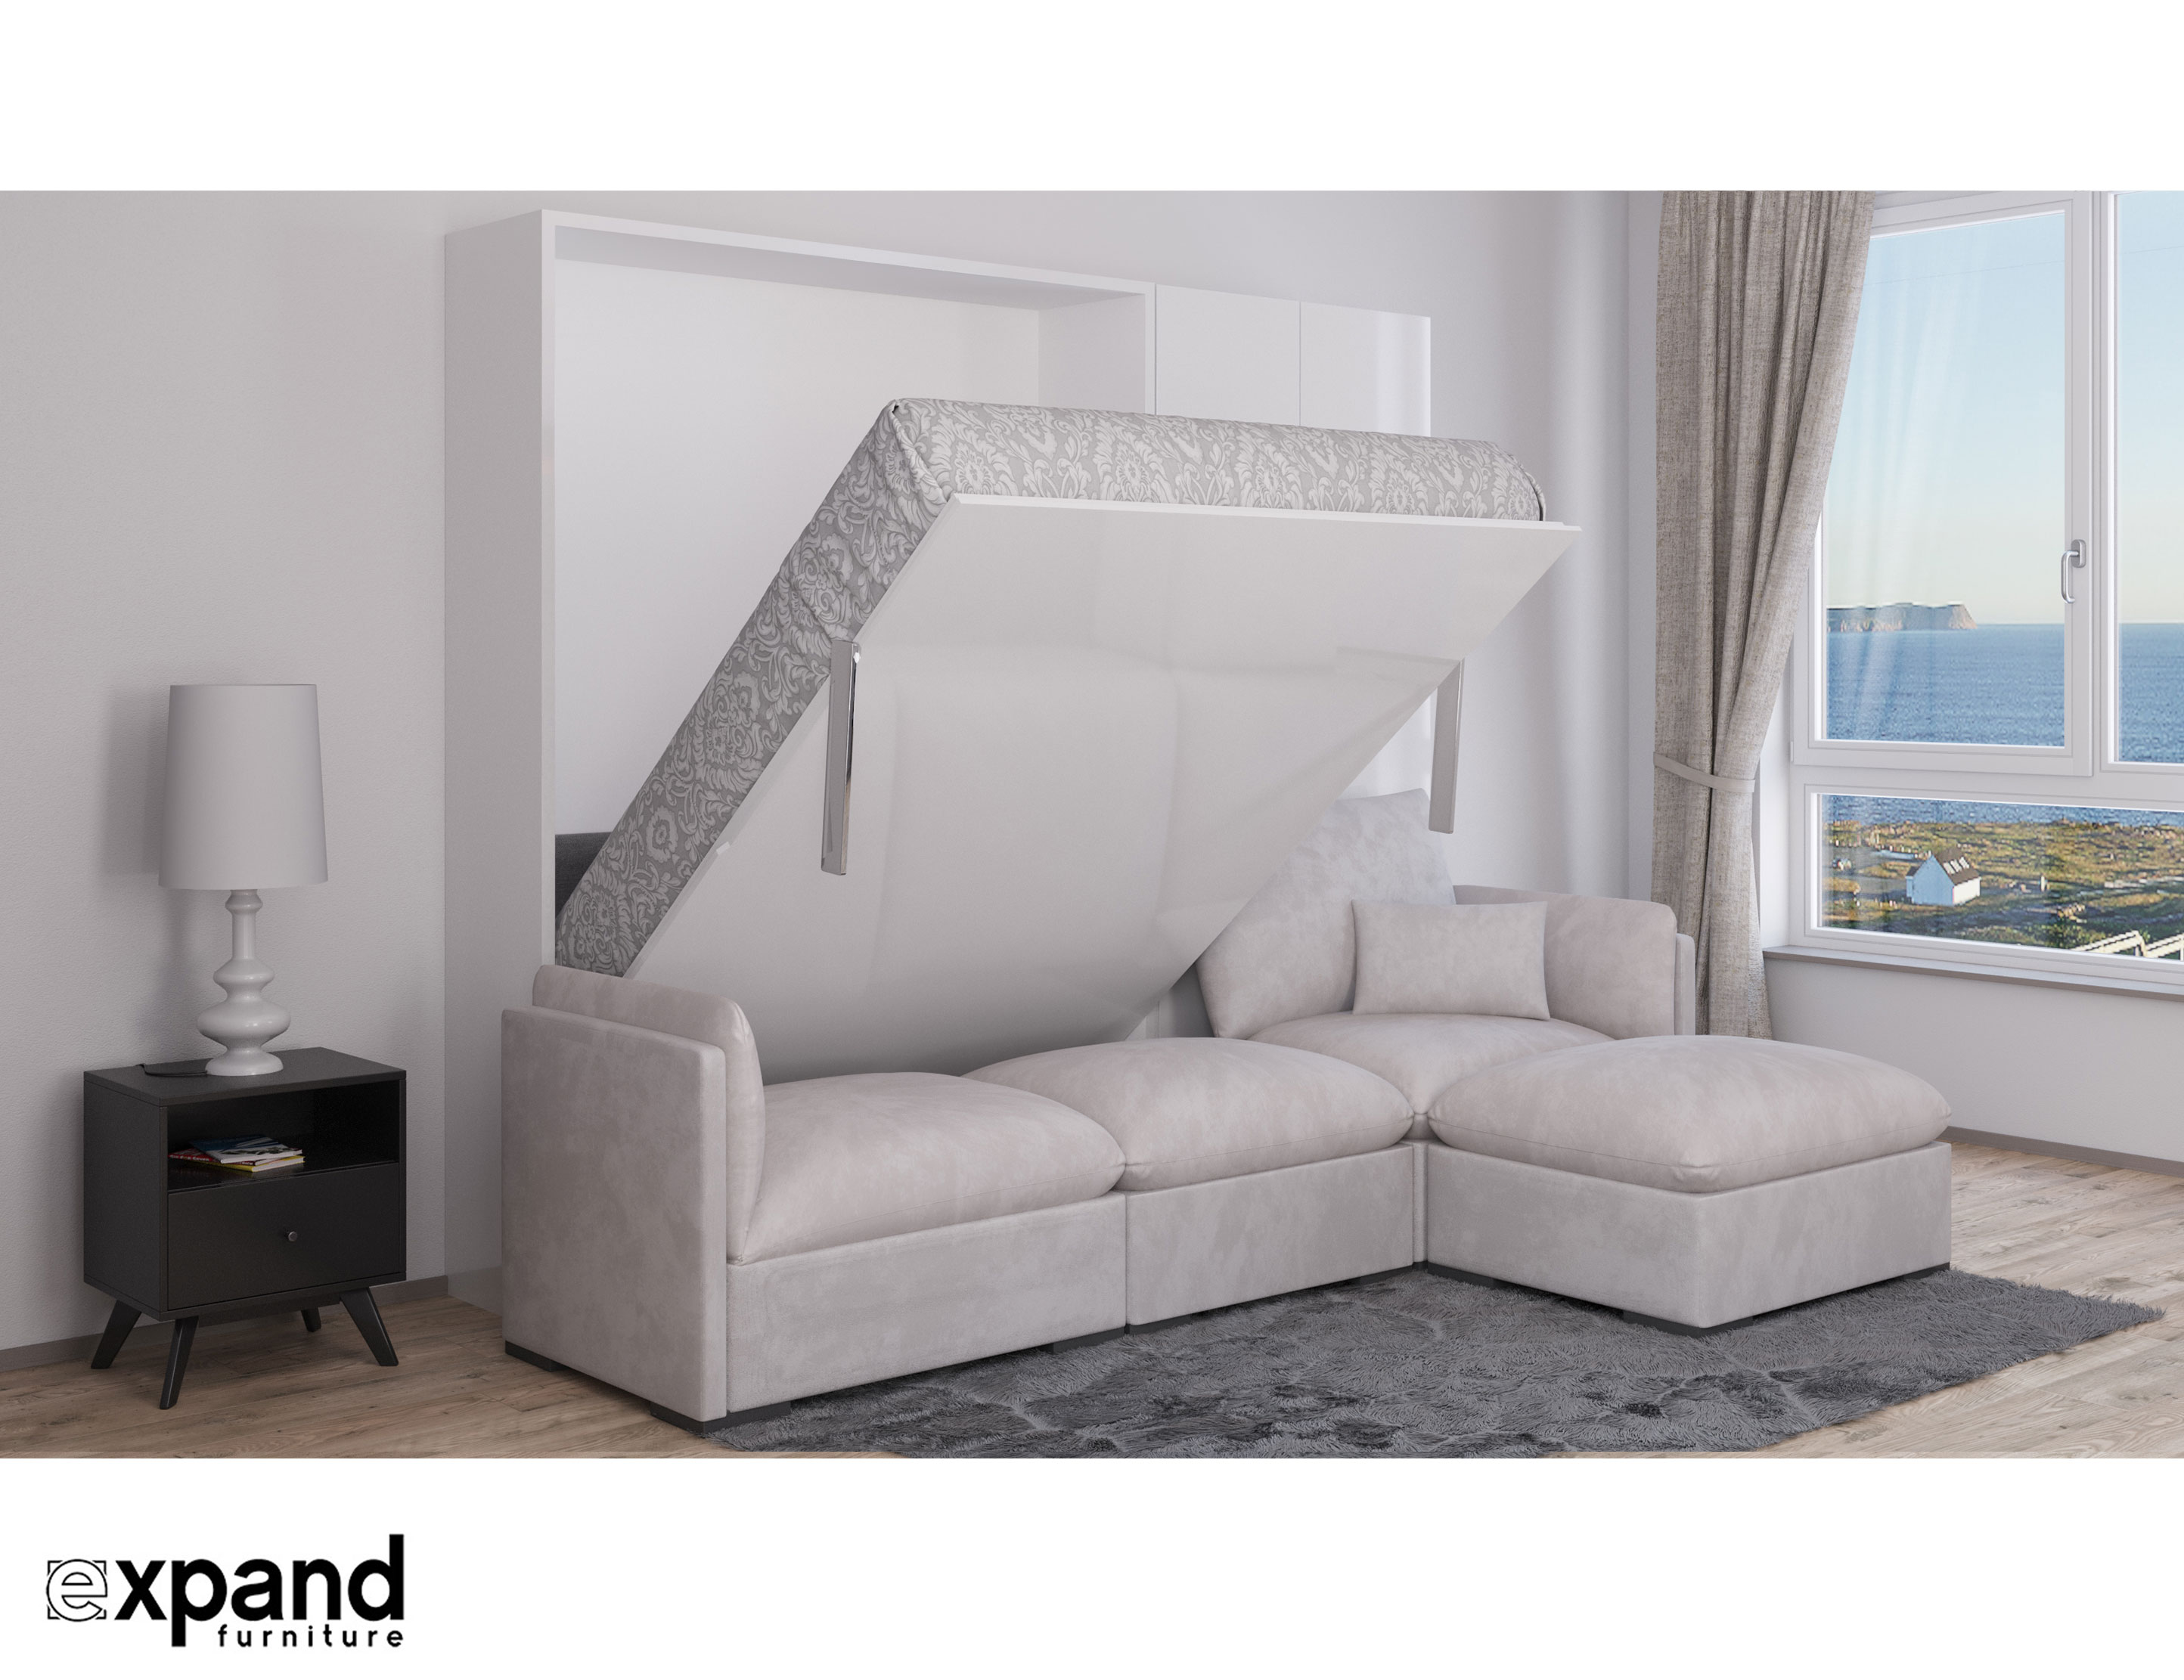 Exceptional Expand Furniture